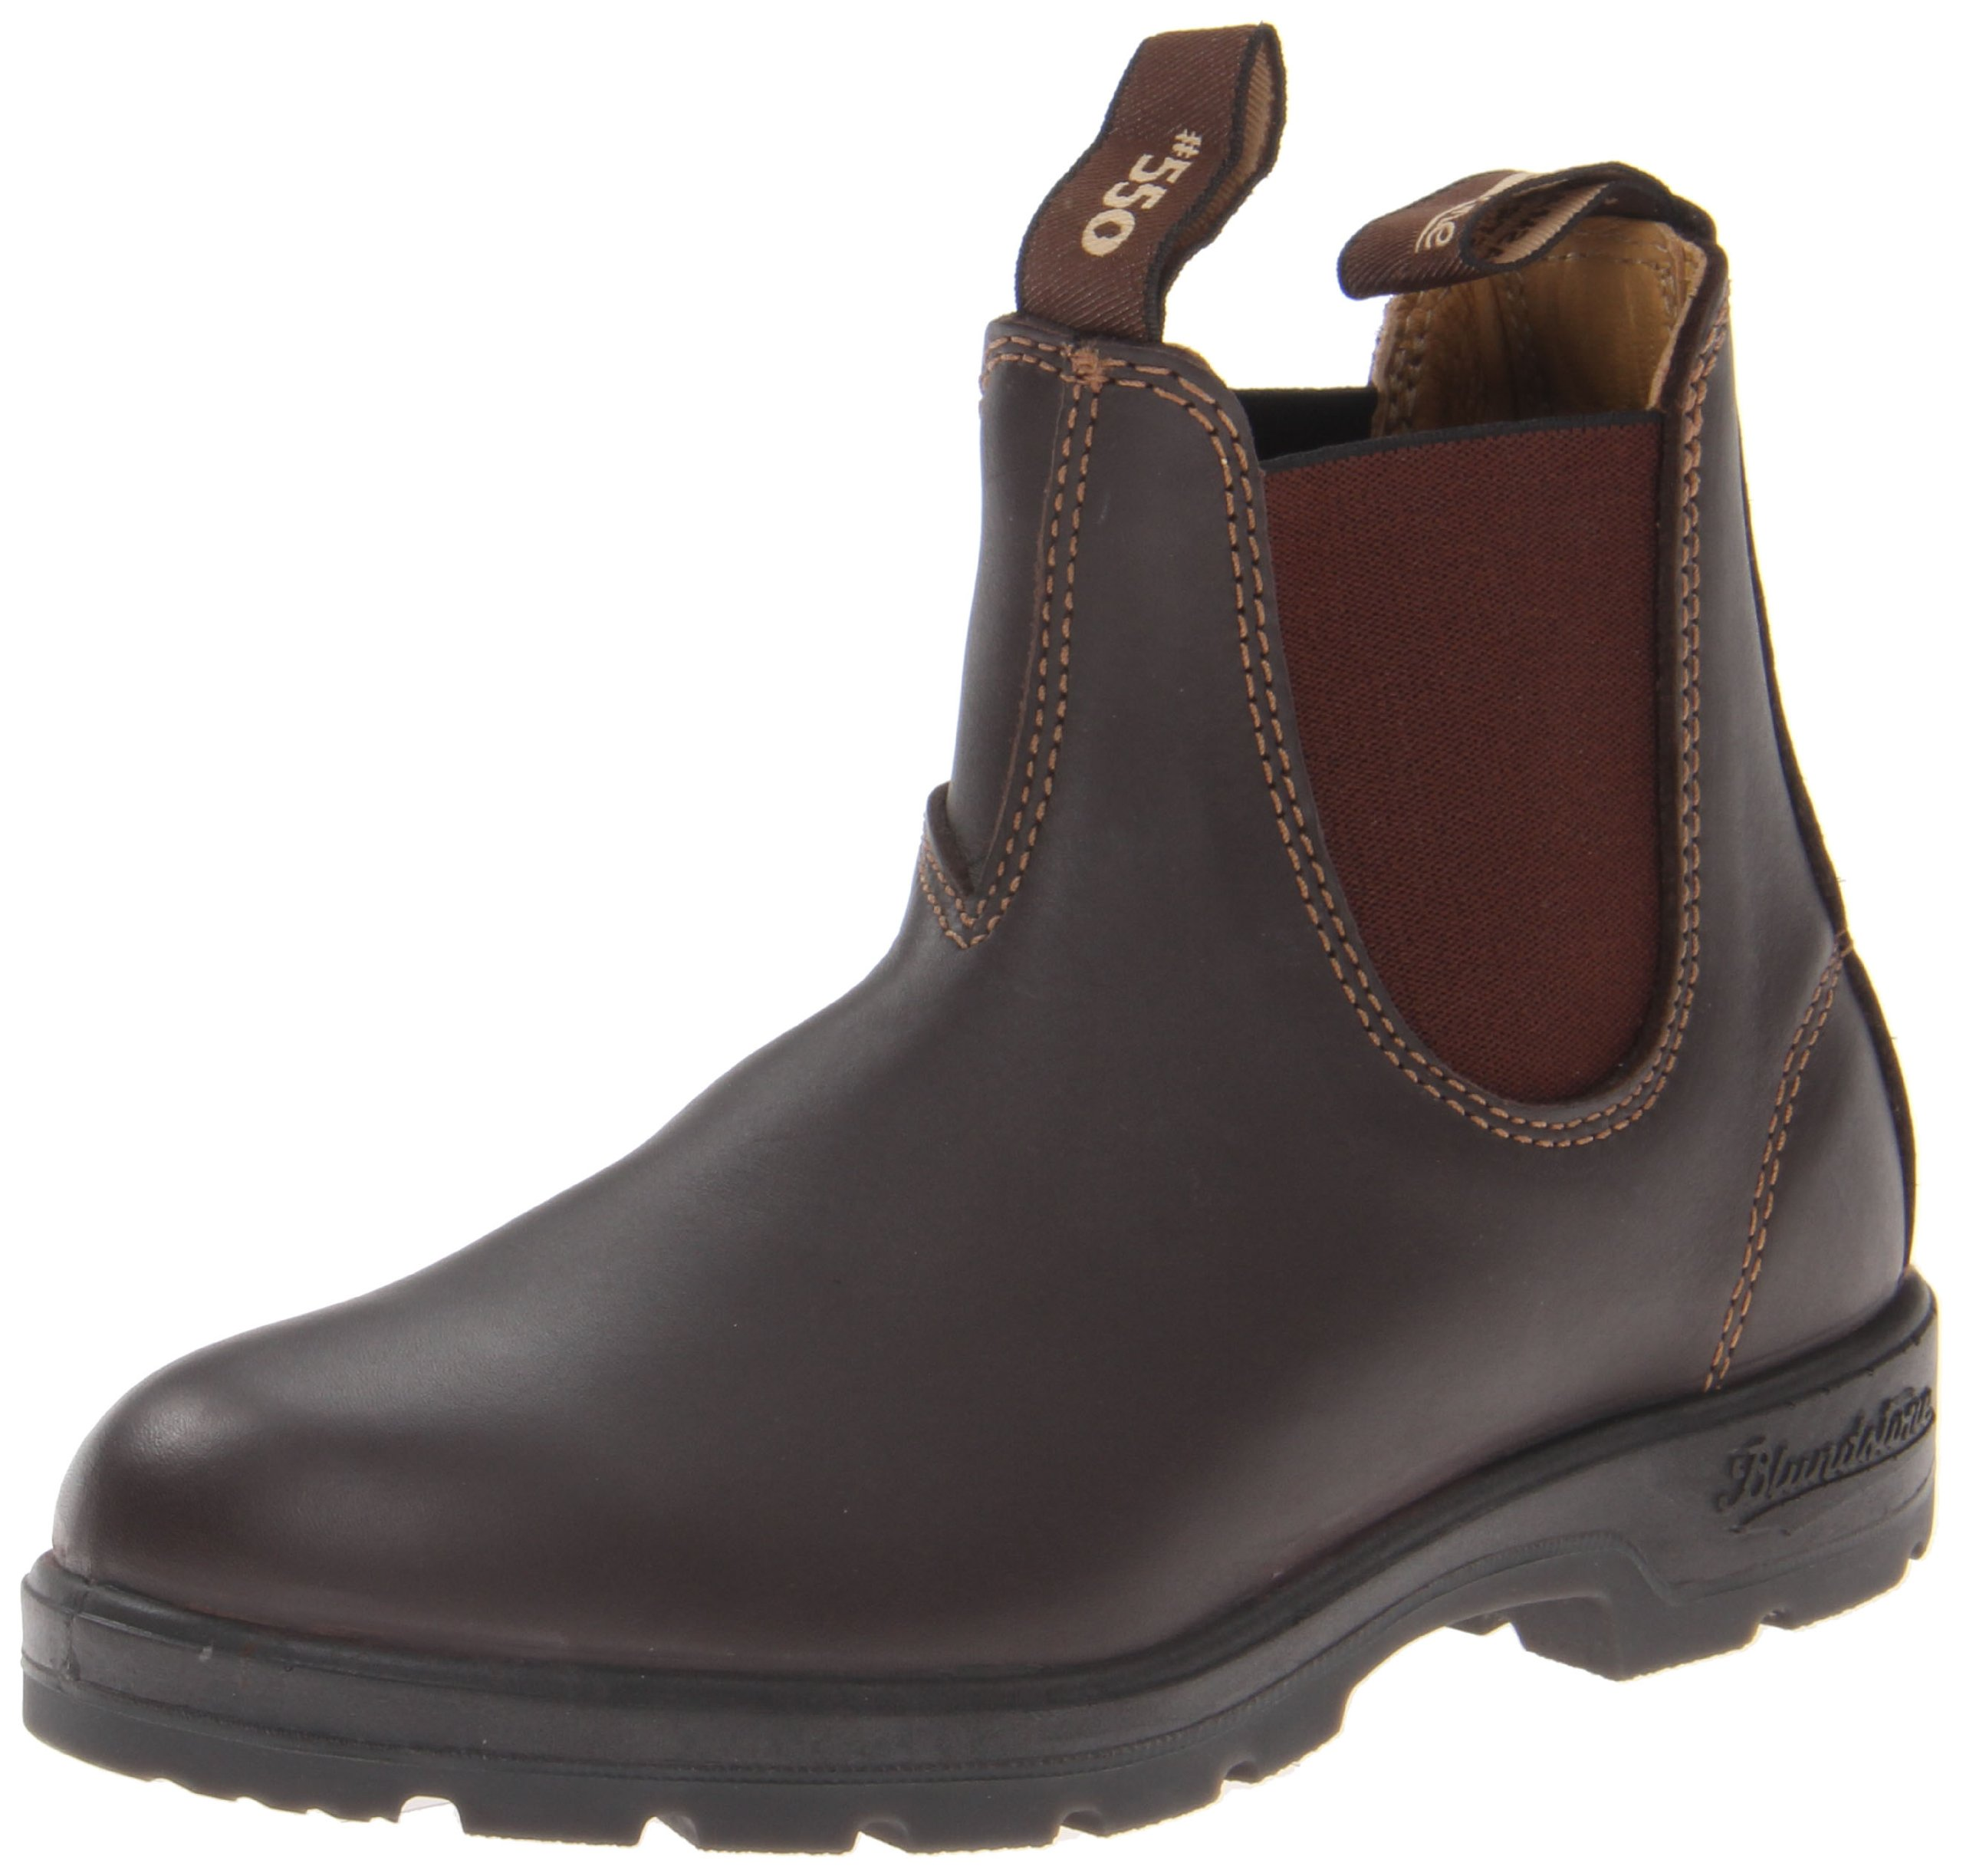 Blundstone Women's Blundstone 550 Rugged Lux Brwn Boot